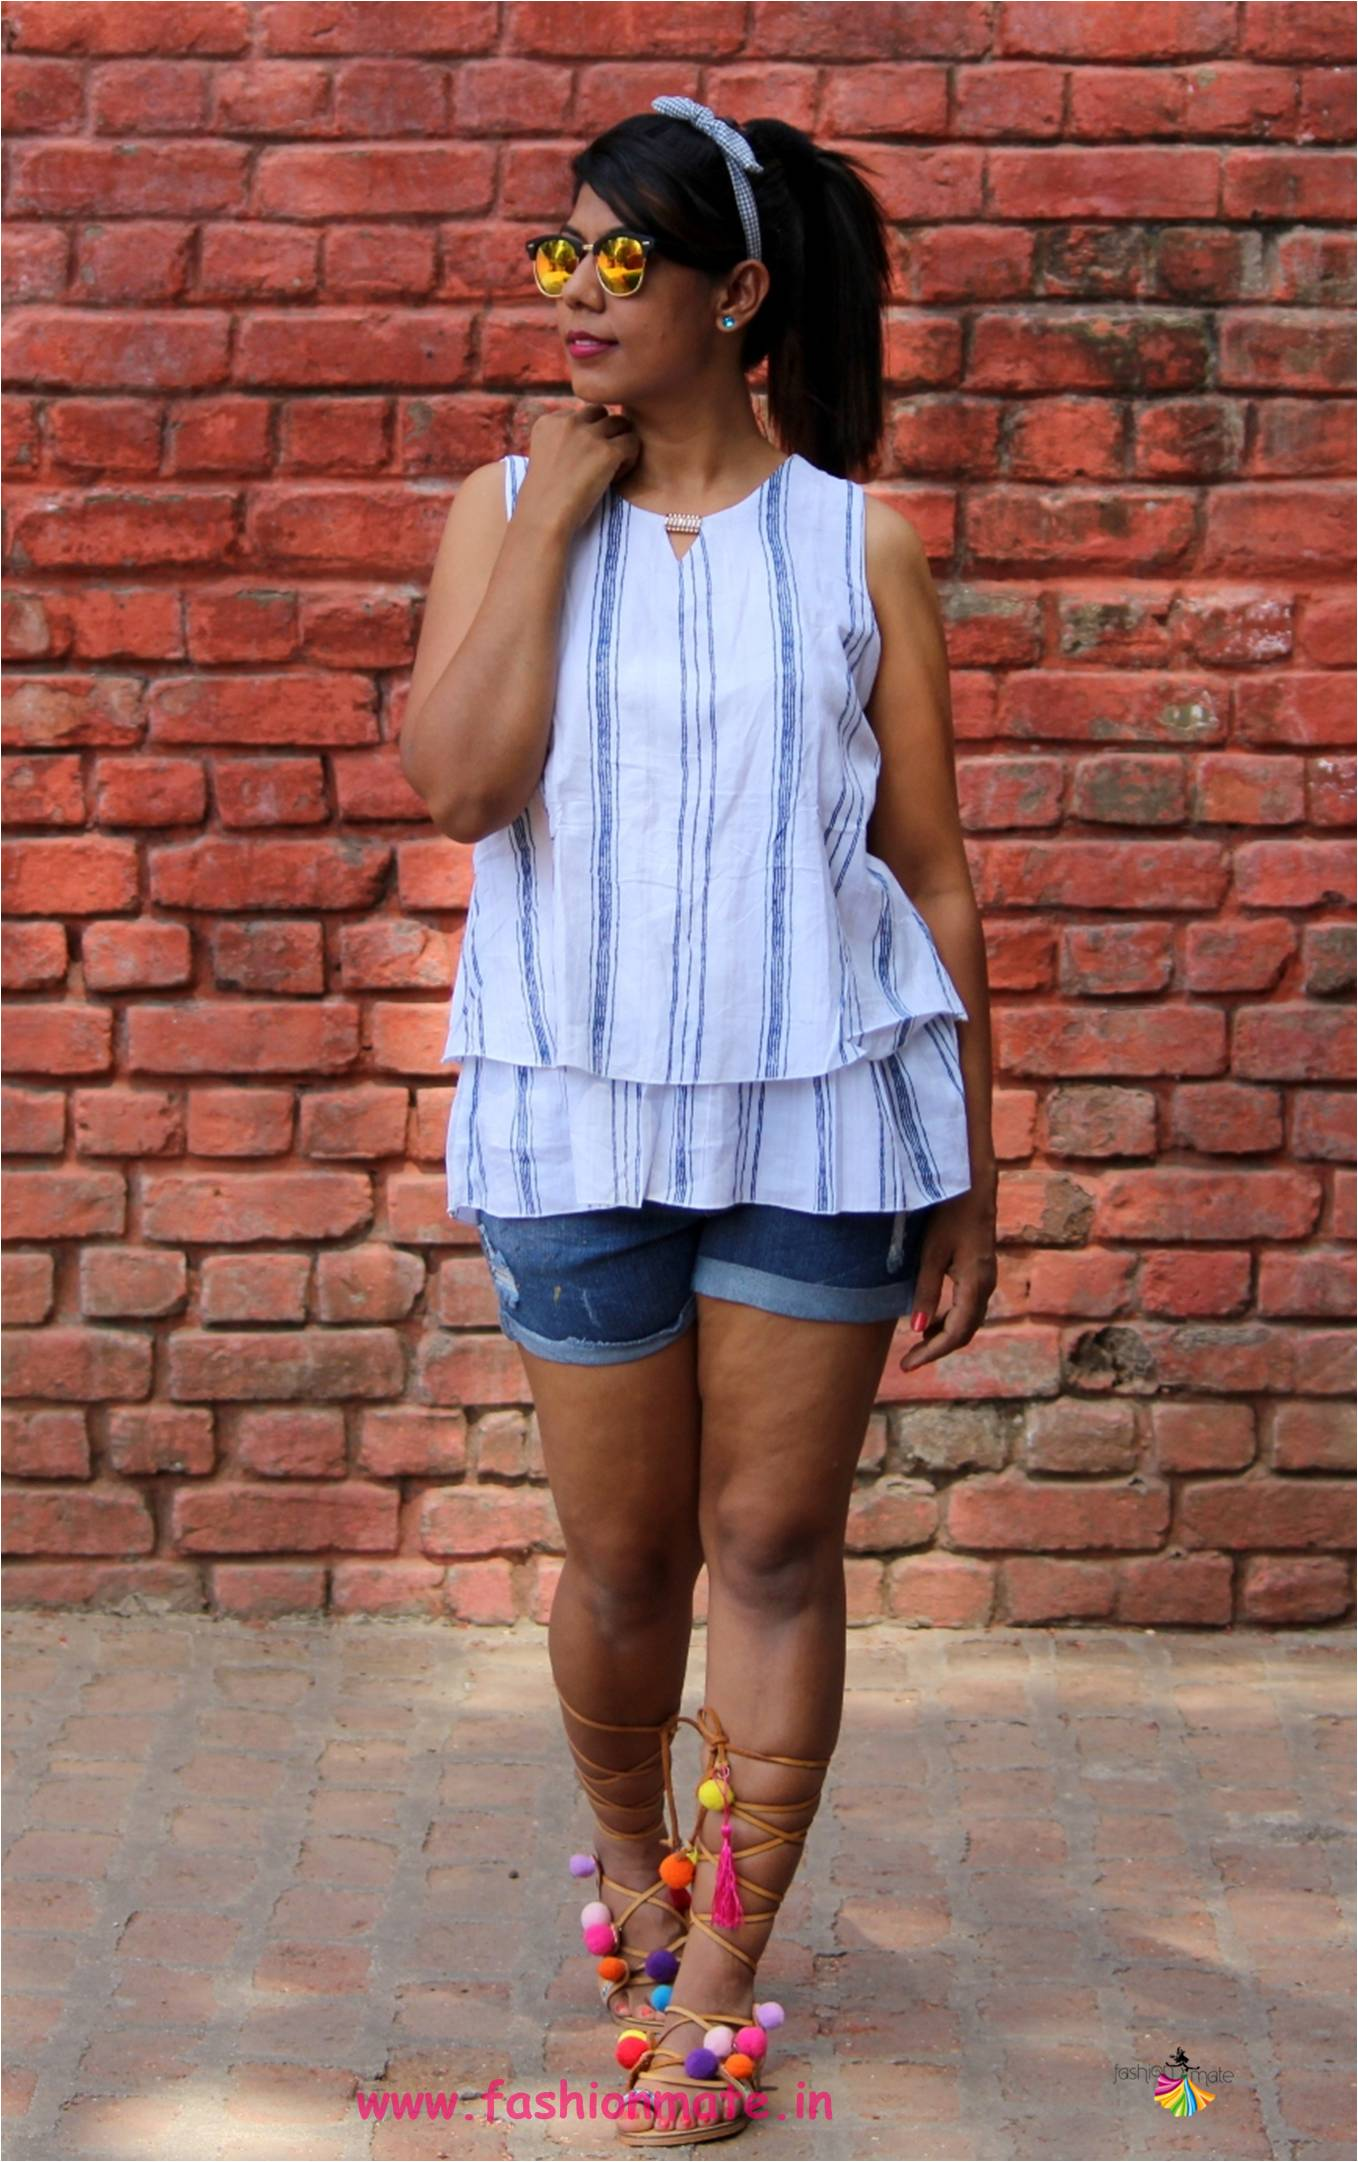 Monsoon health tips – Fitting back in your favorite dress!